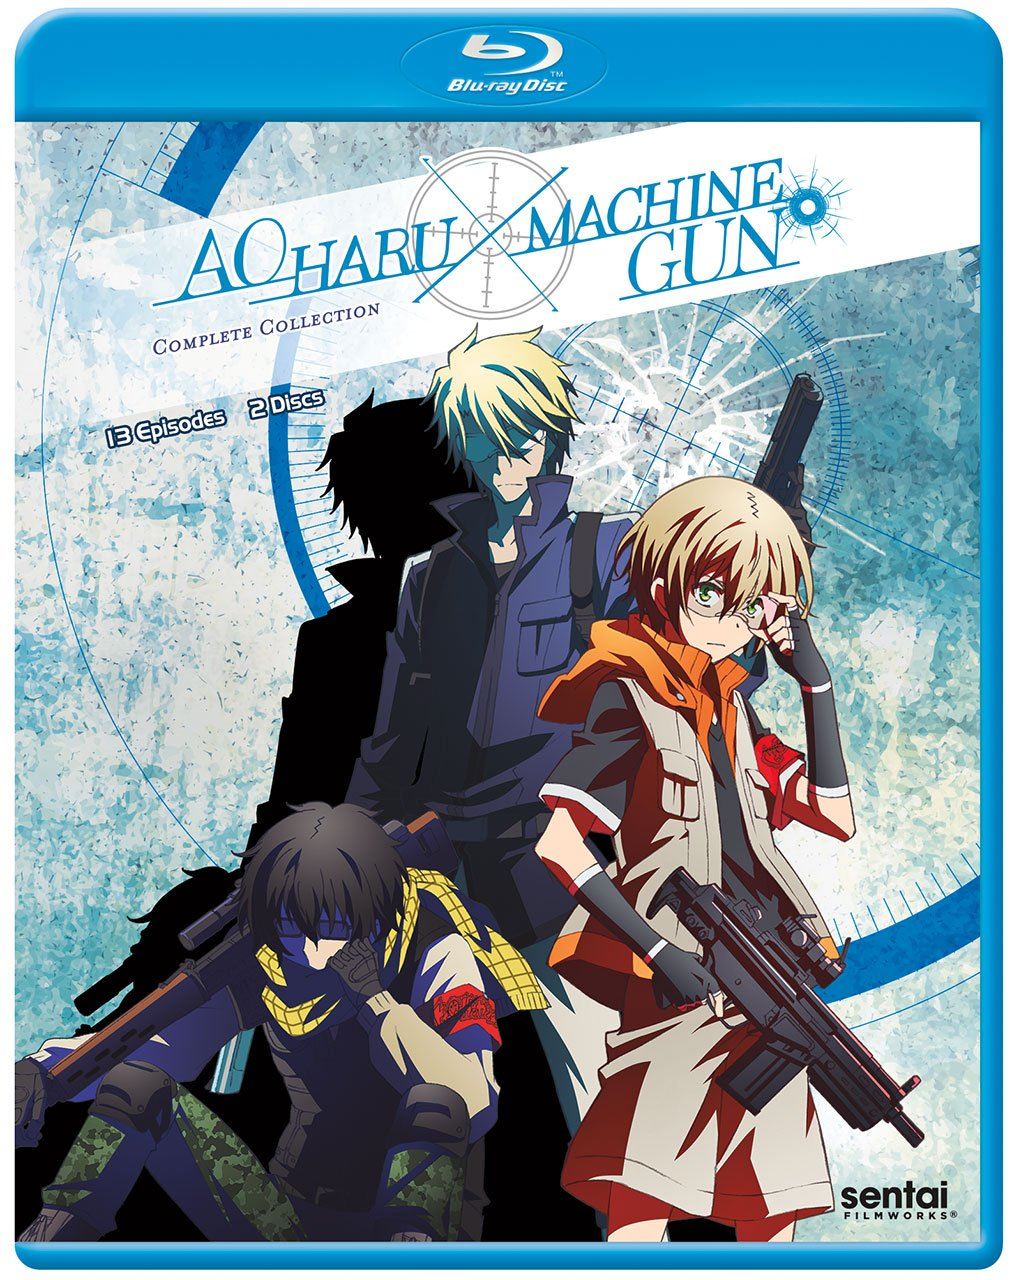 Aoharu x Machinegun Blu-ray (Dual Audio)